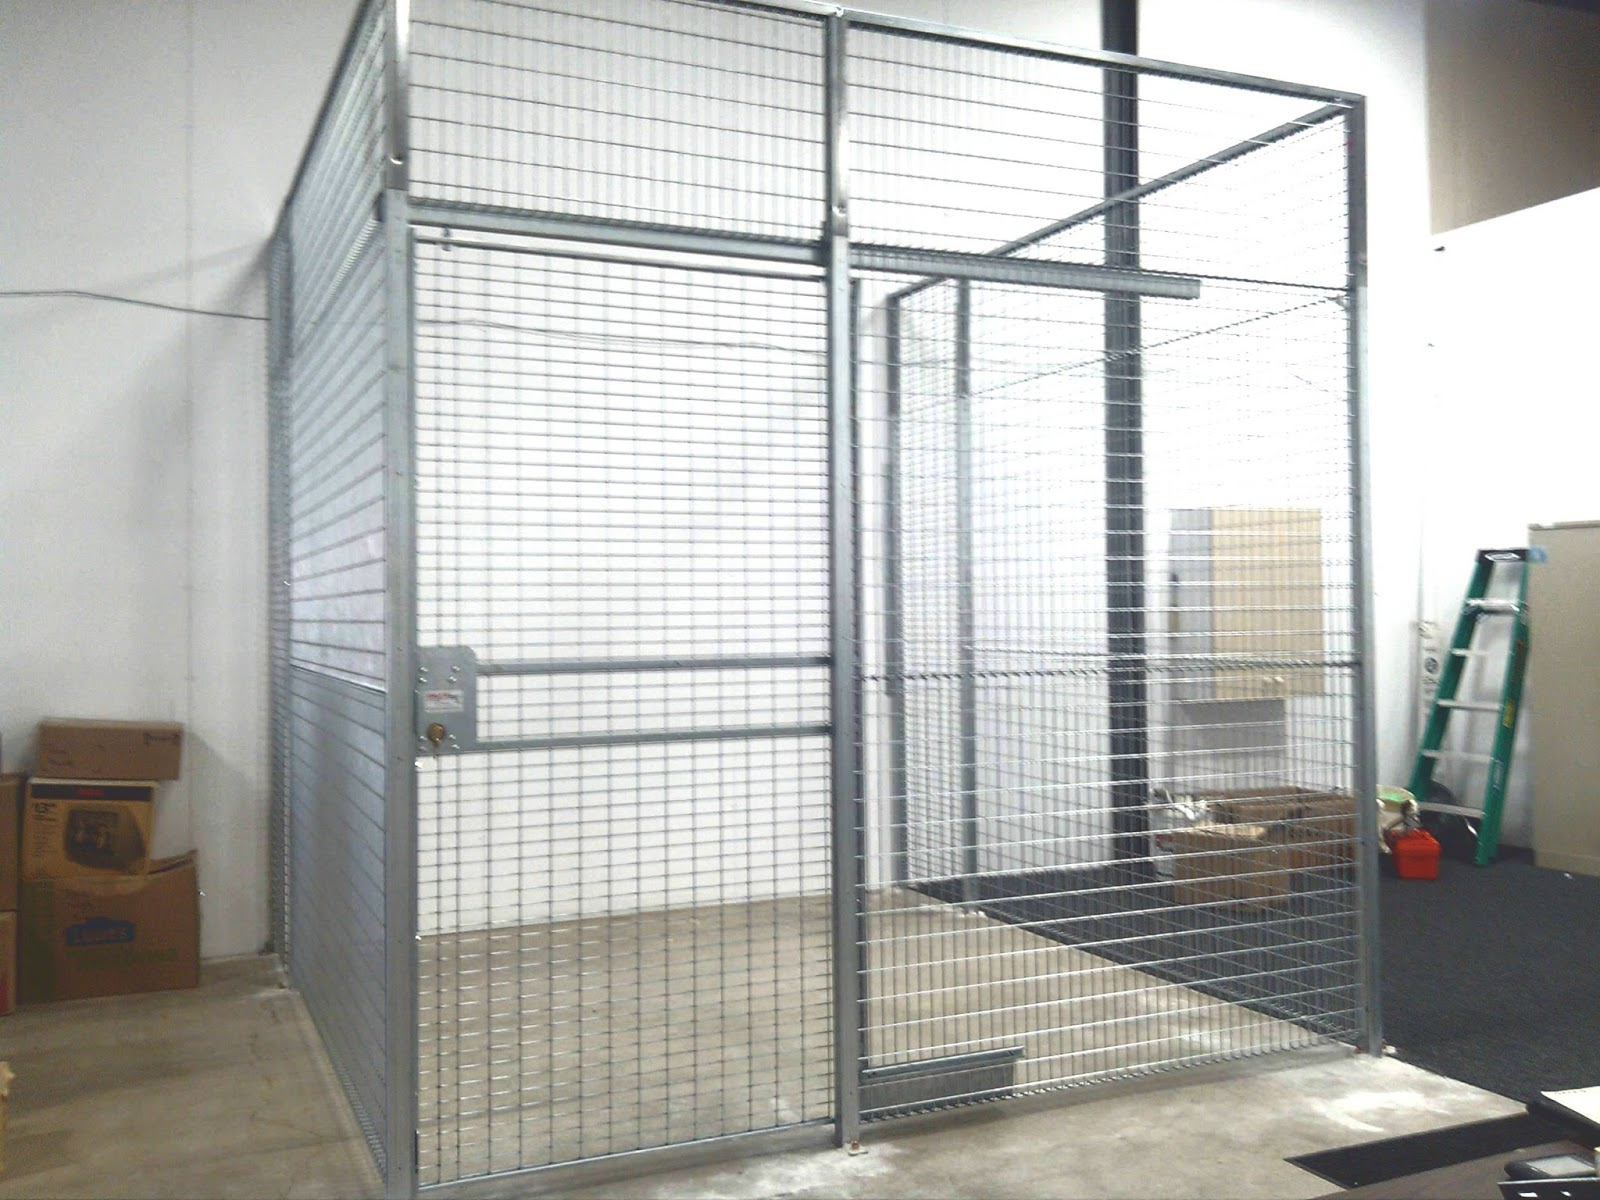 Storage Cages Generate Revenue In Nyc Office Buildings